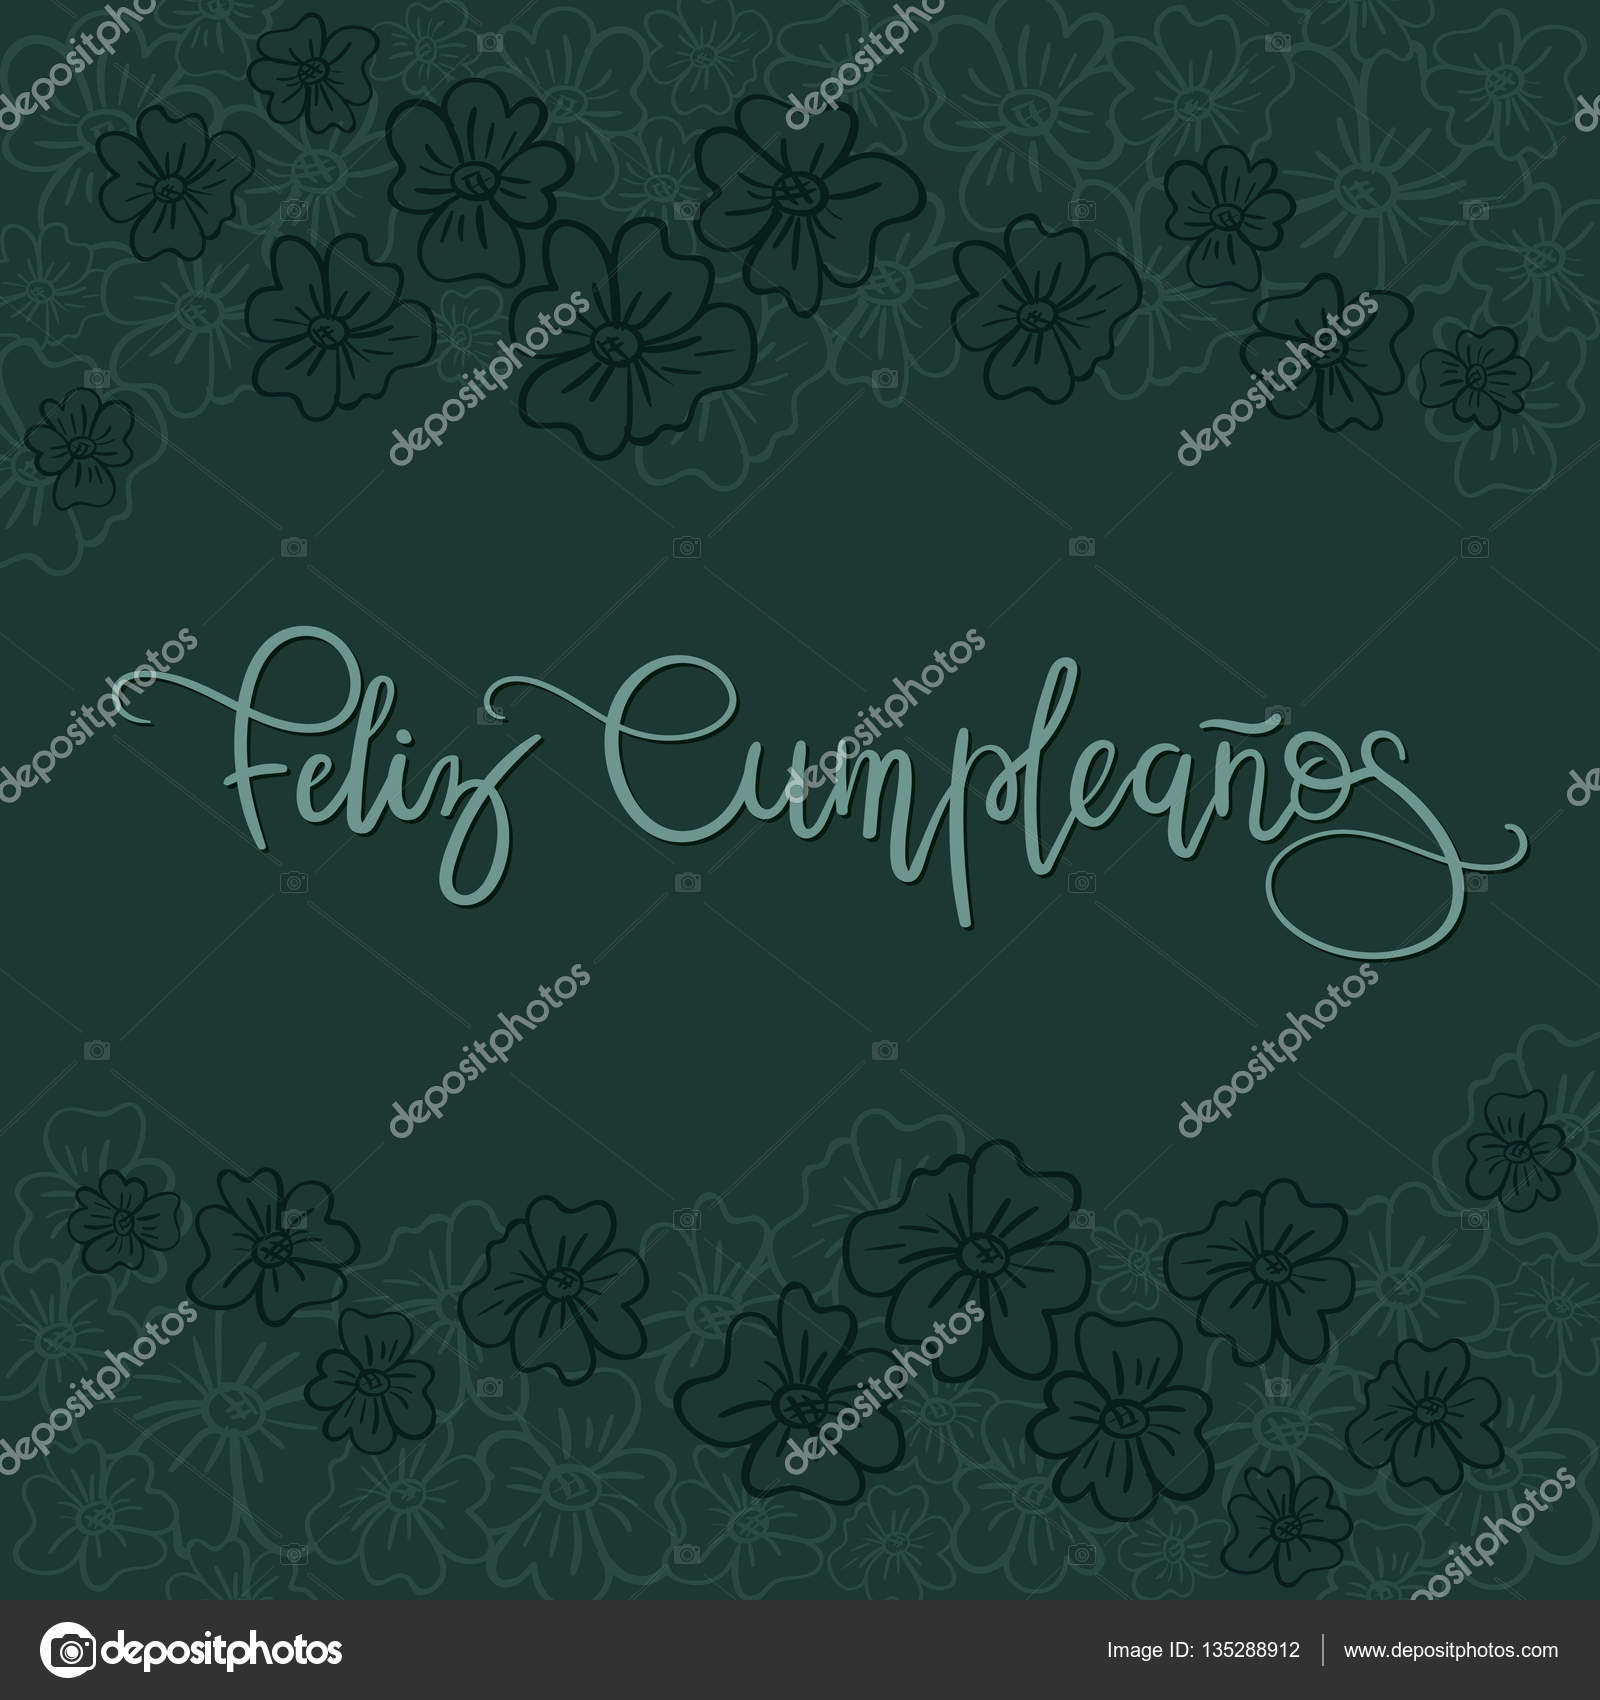 Feliz Cumpleanos Happy Birthday Spanish Text Greeting Card